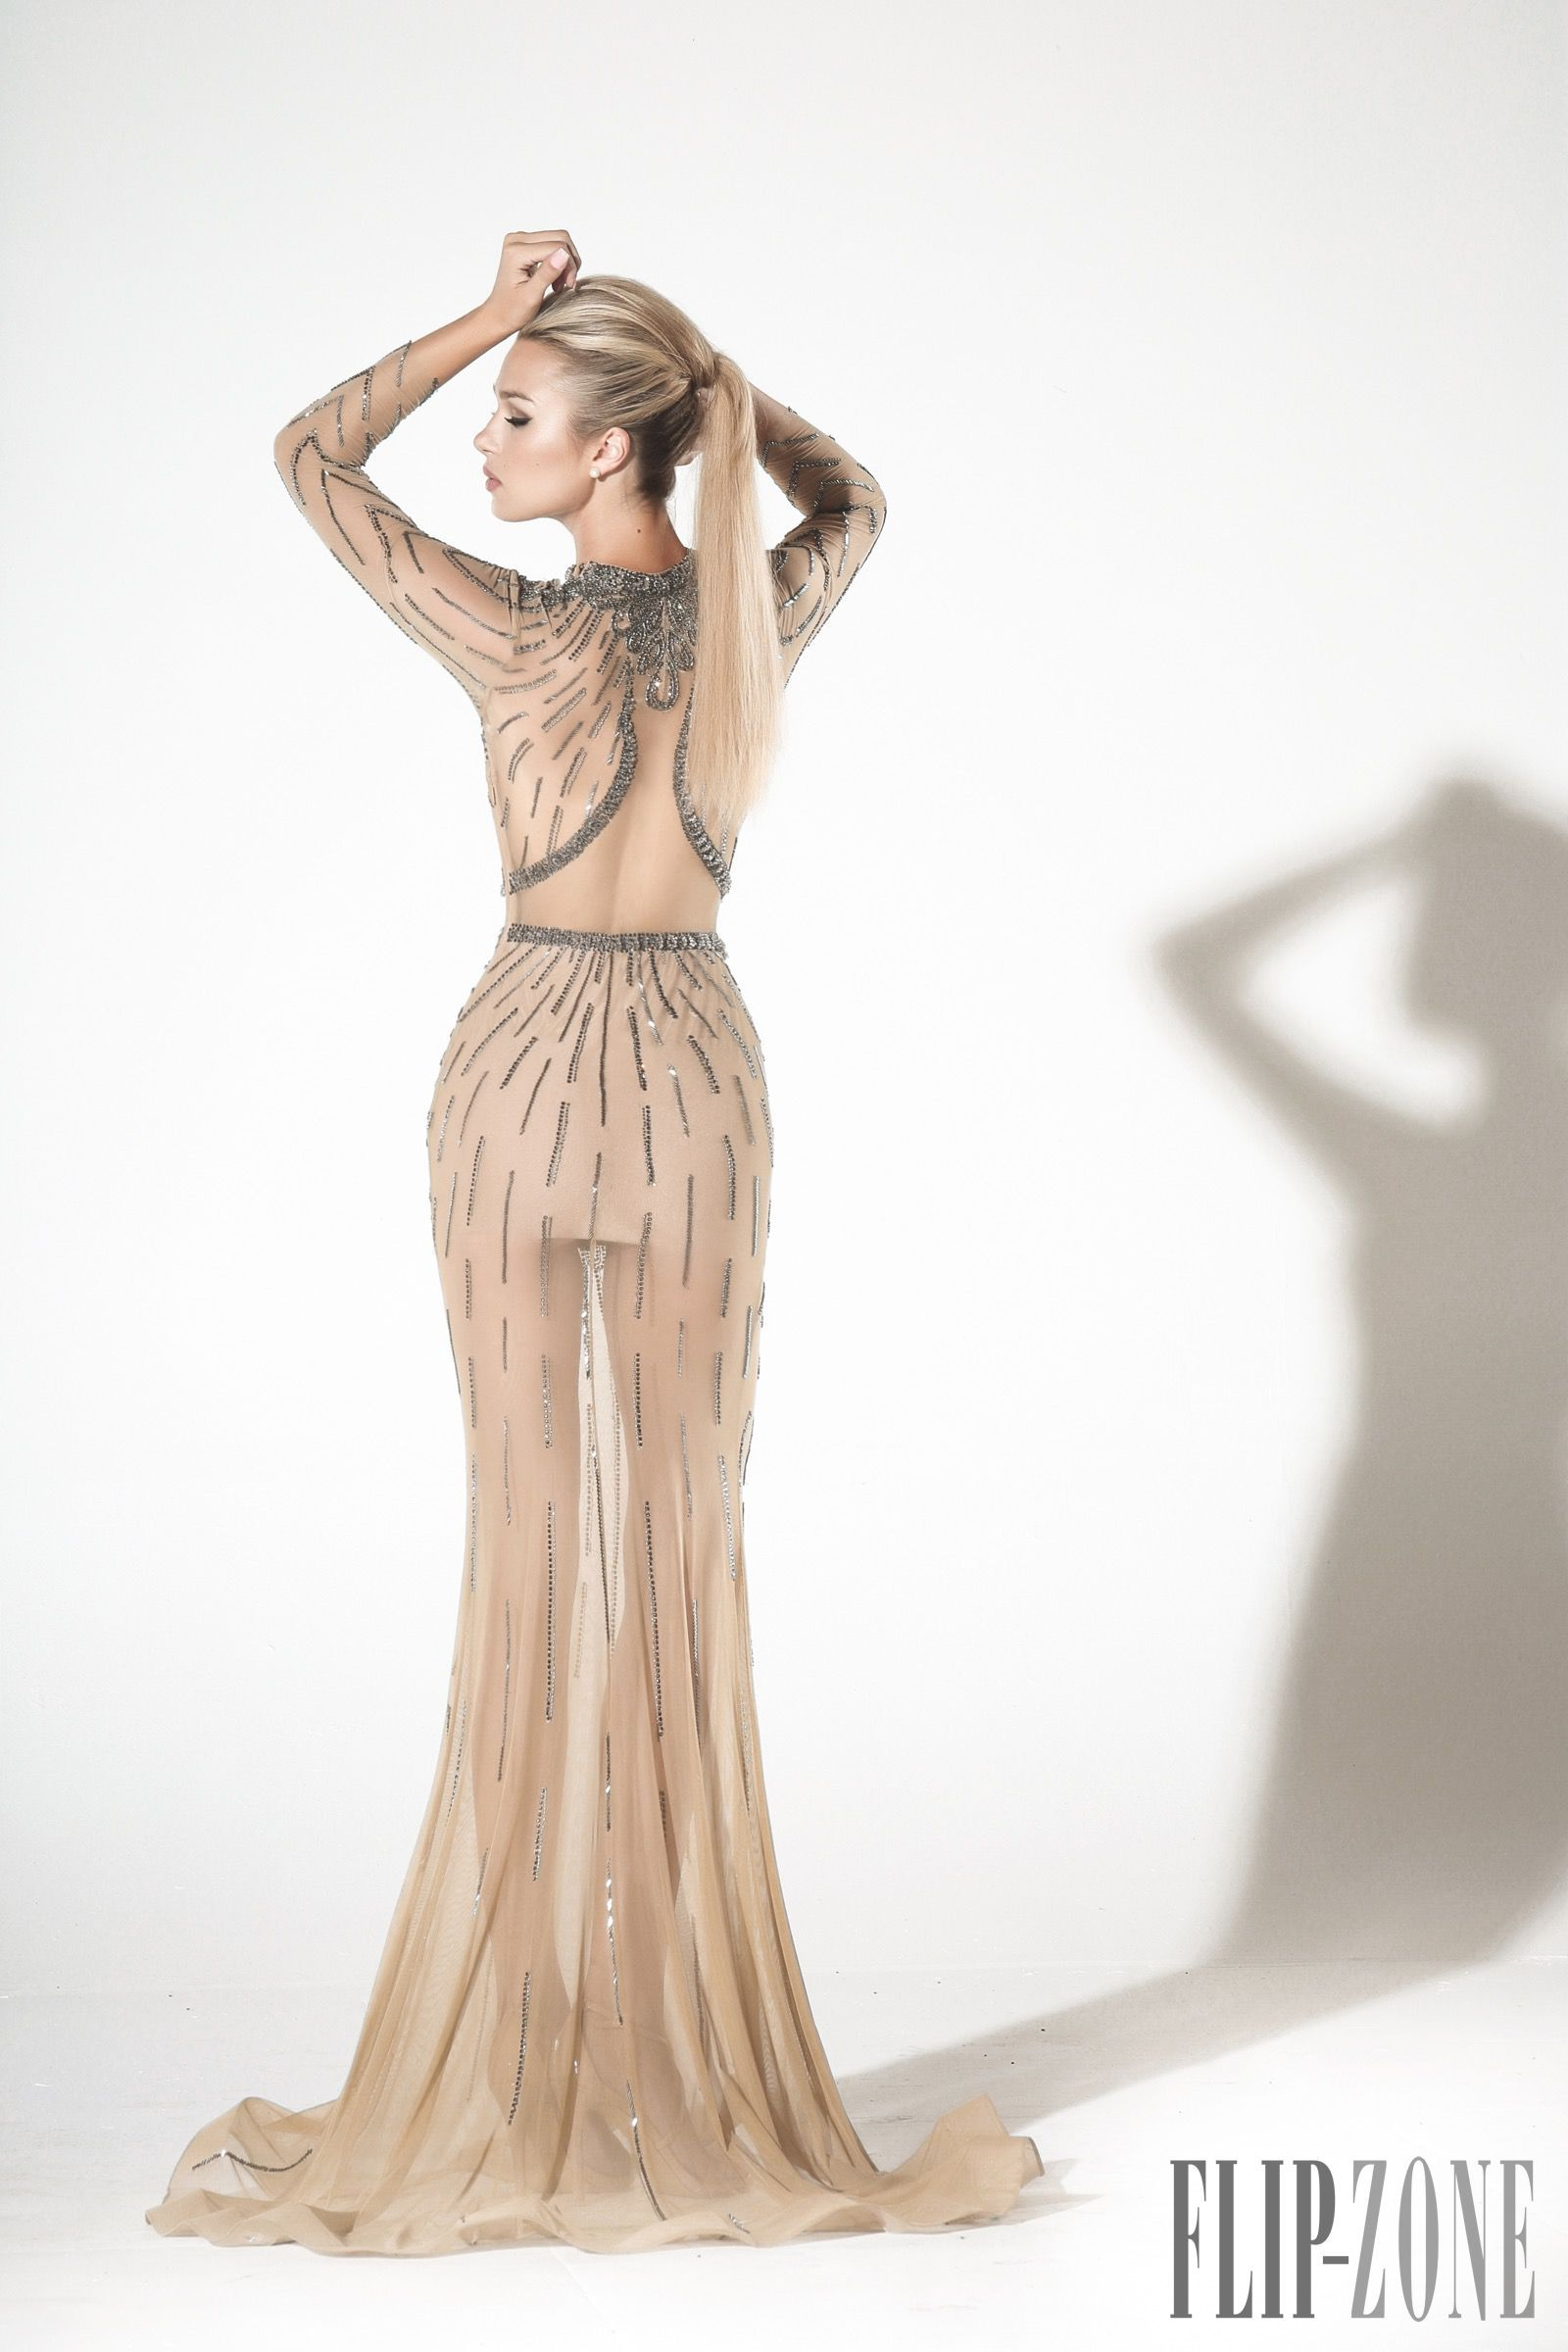 Charbel zoé springsummer couture in the clothes